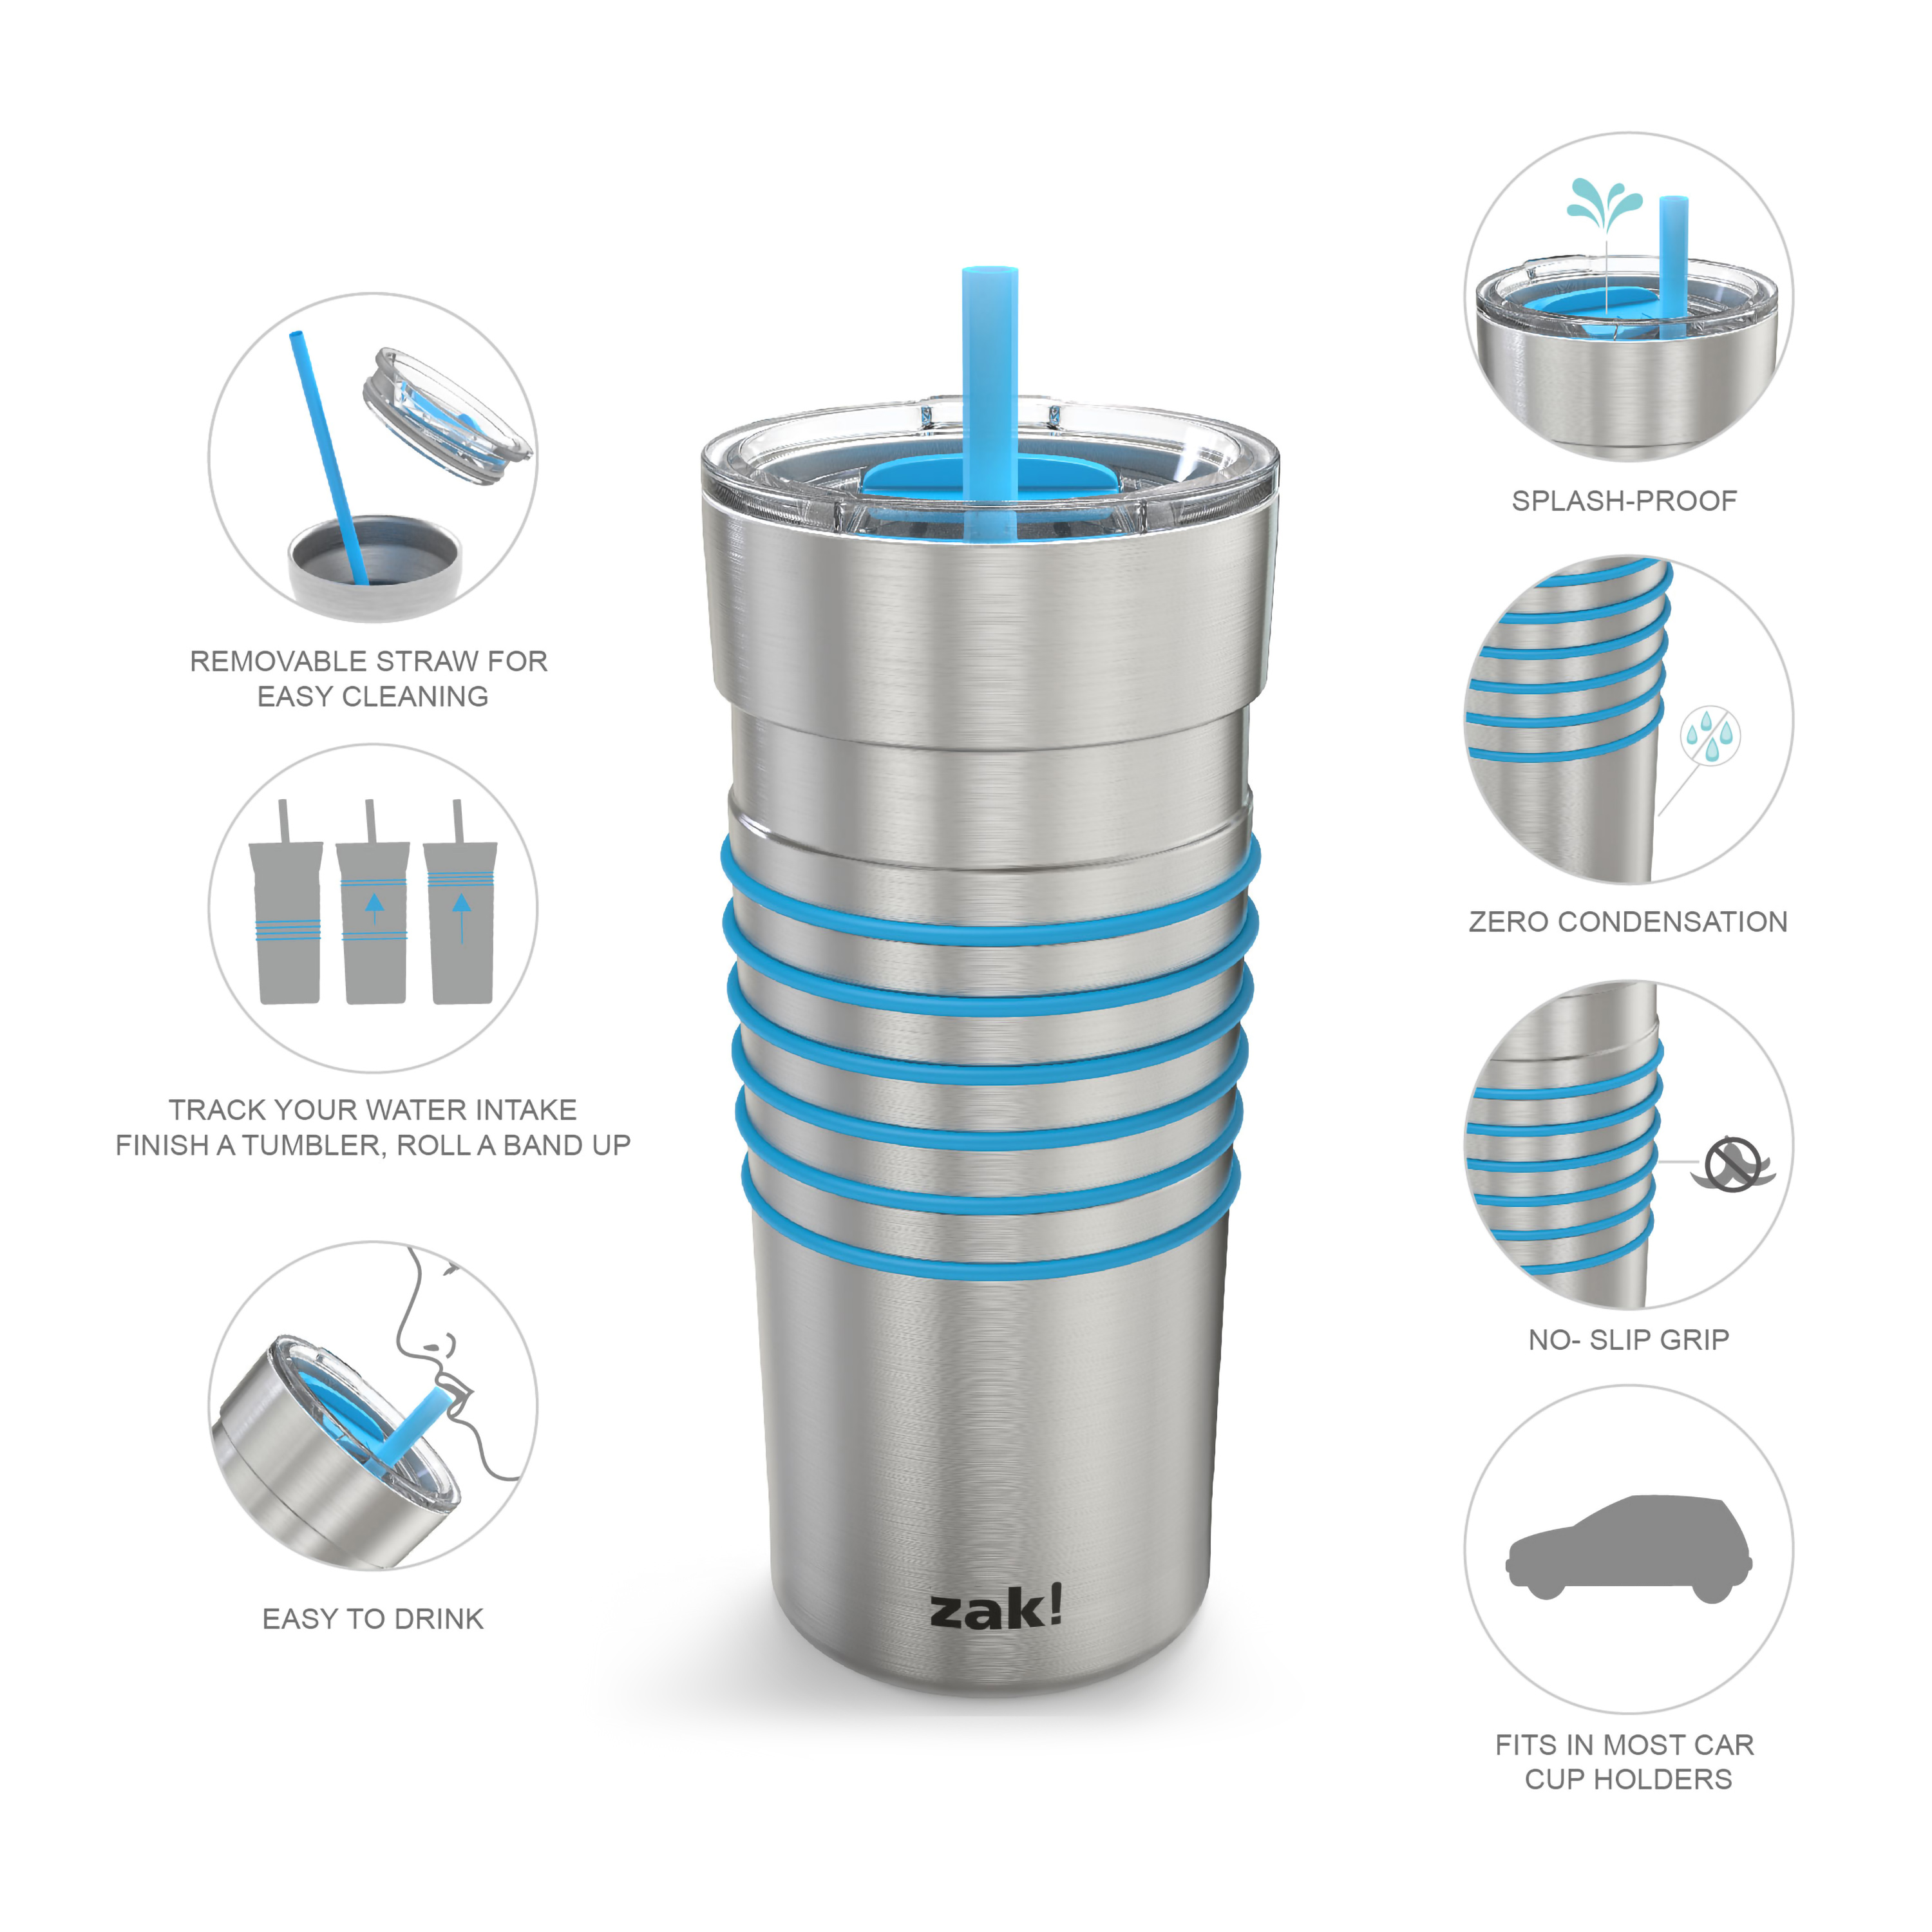 HydraTrak 20 ounce Vacuum Insulated Stainless Steel Tumbler, Stainless Steel with Blue Rings slideshow image 4